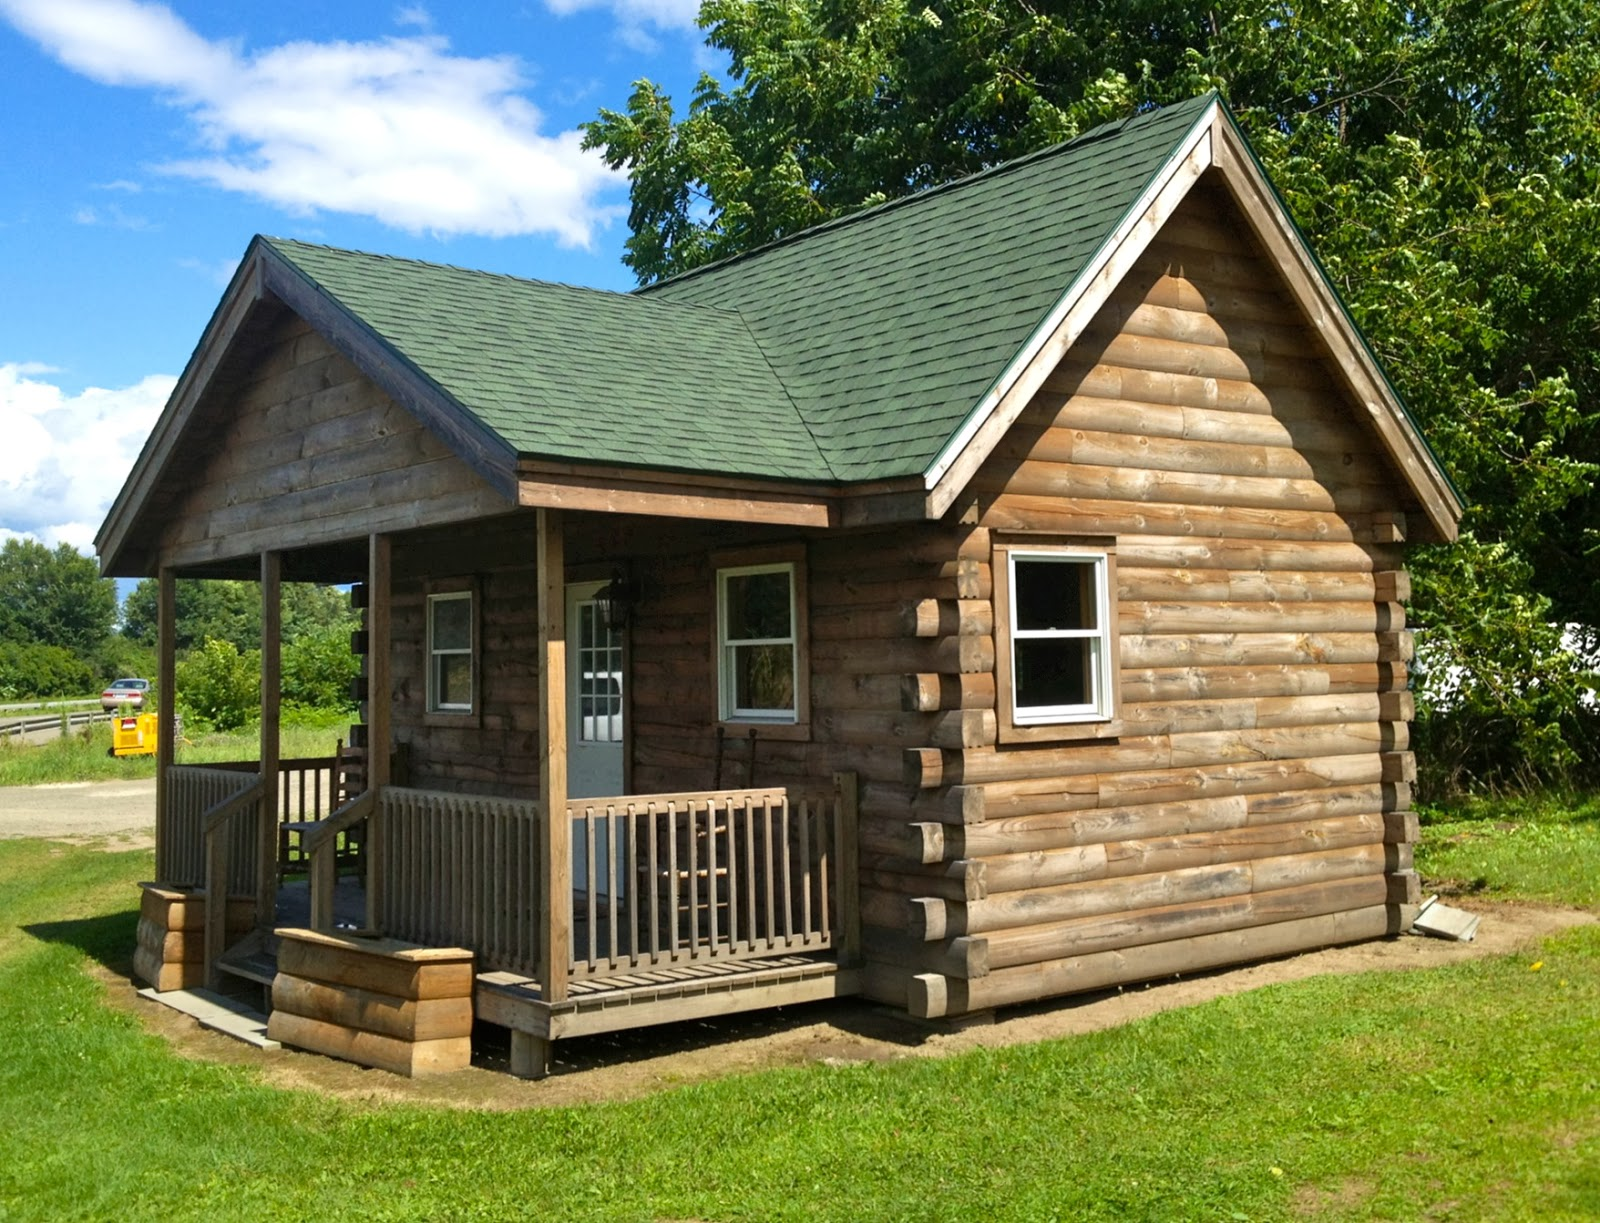 Small scale homes tiny home near binghamton ny - Small homes design ideas ...